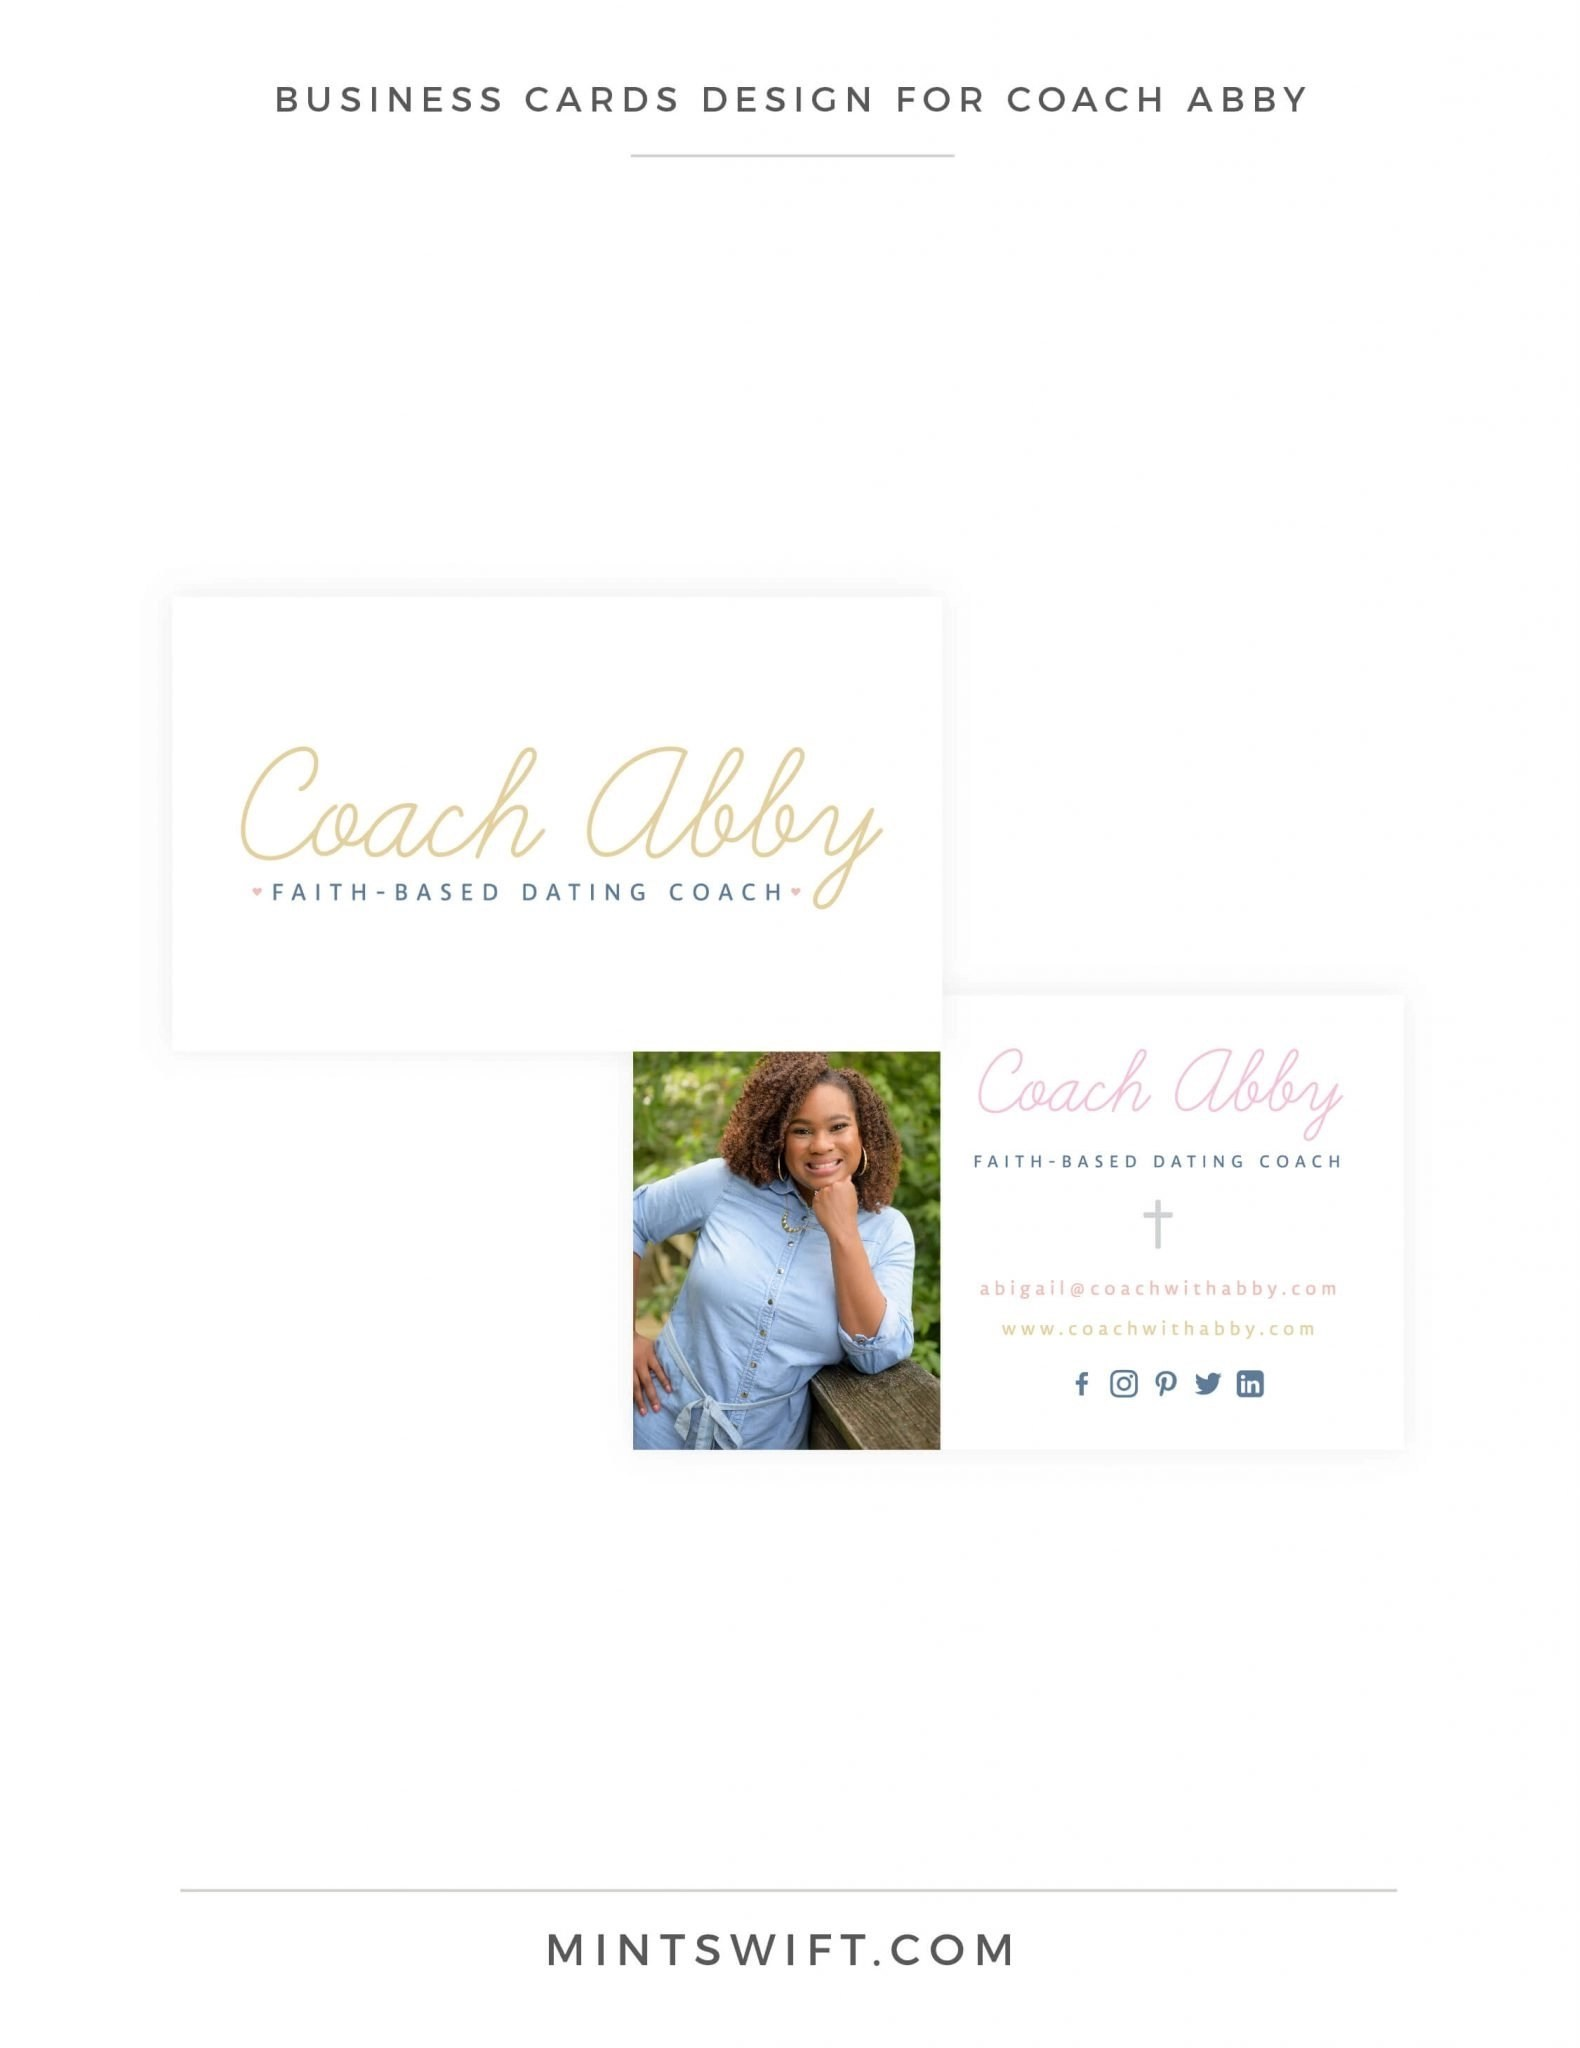 Coach Abby - Business Cards Design - Brand Design - MintSwift